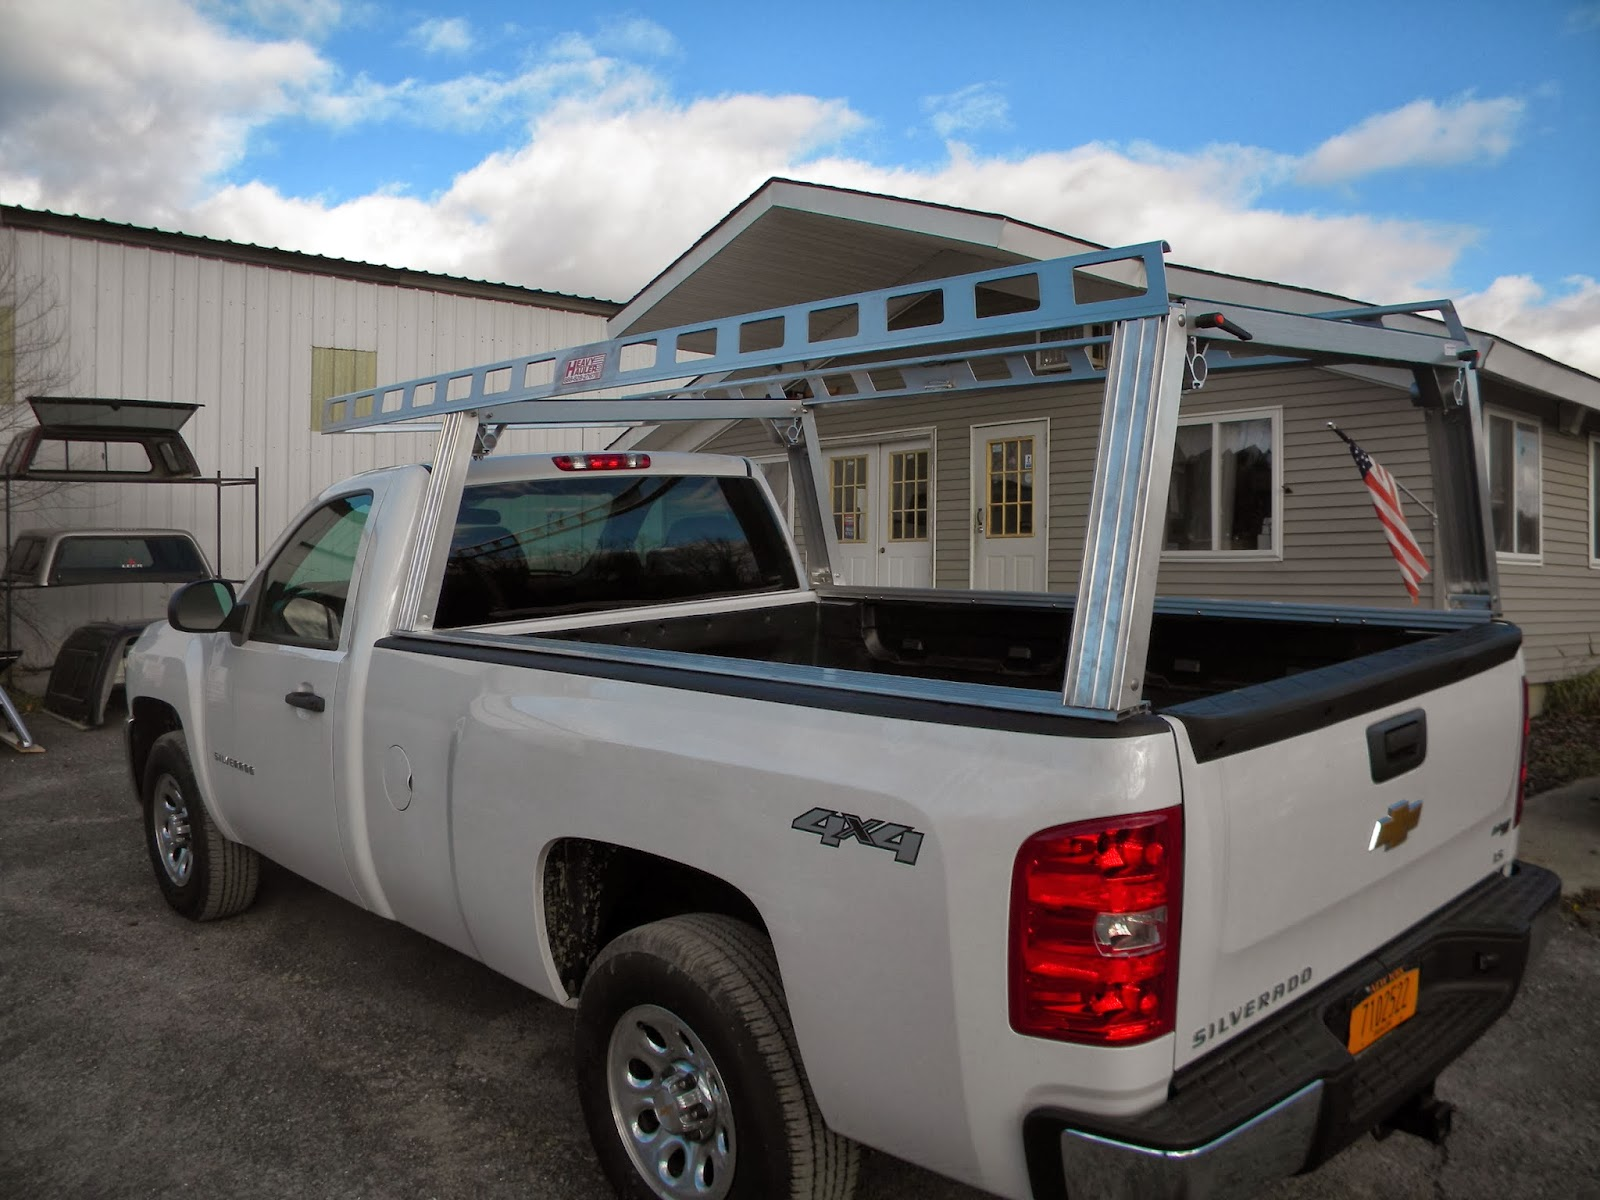 System One Ladder Rack ST-200 | Heavy Hauler Trailers